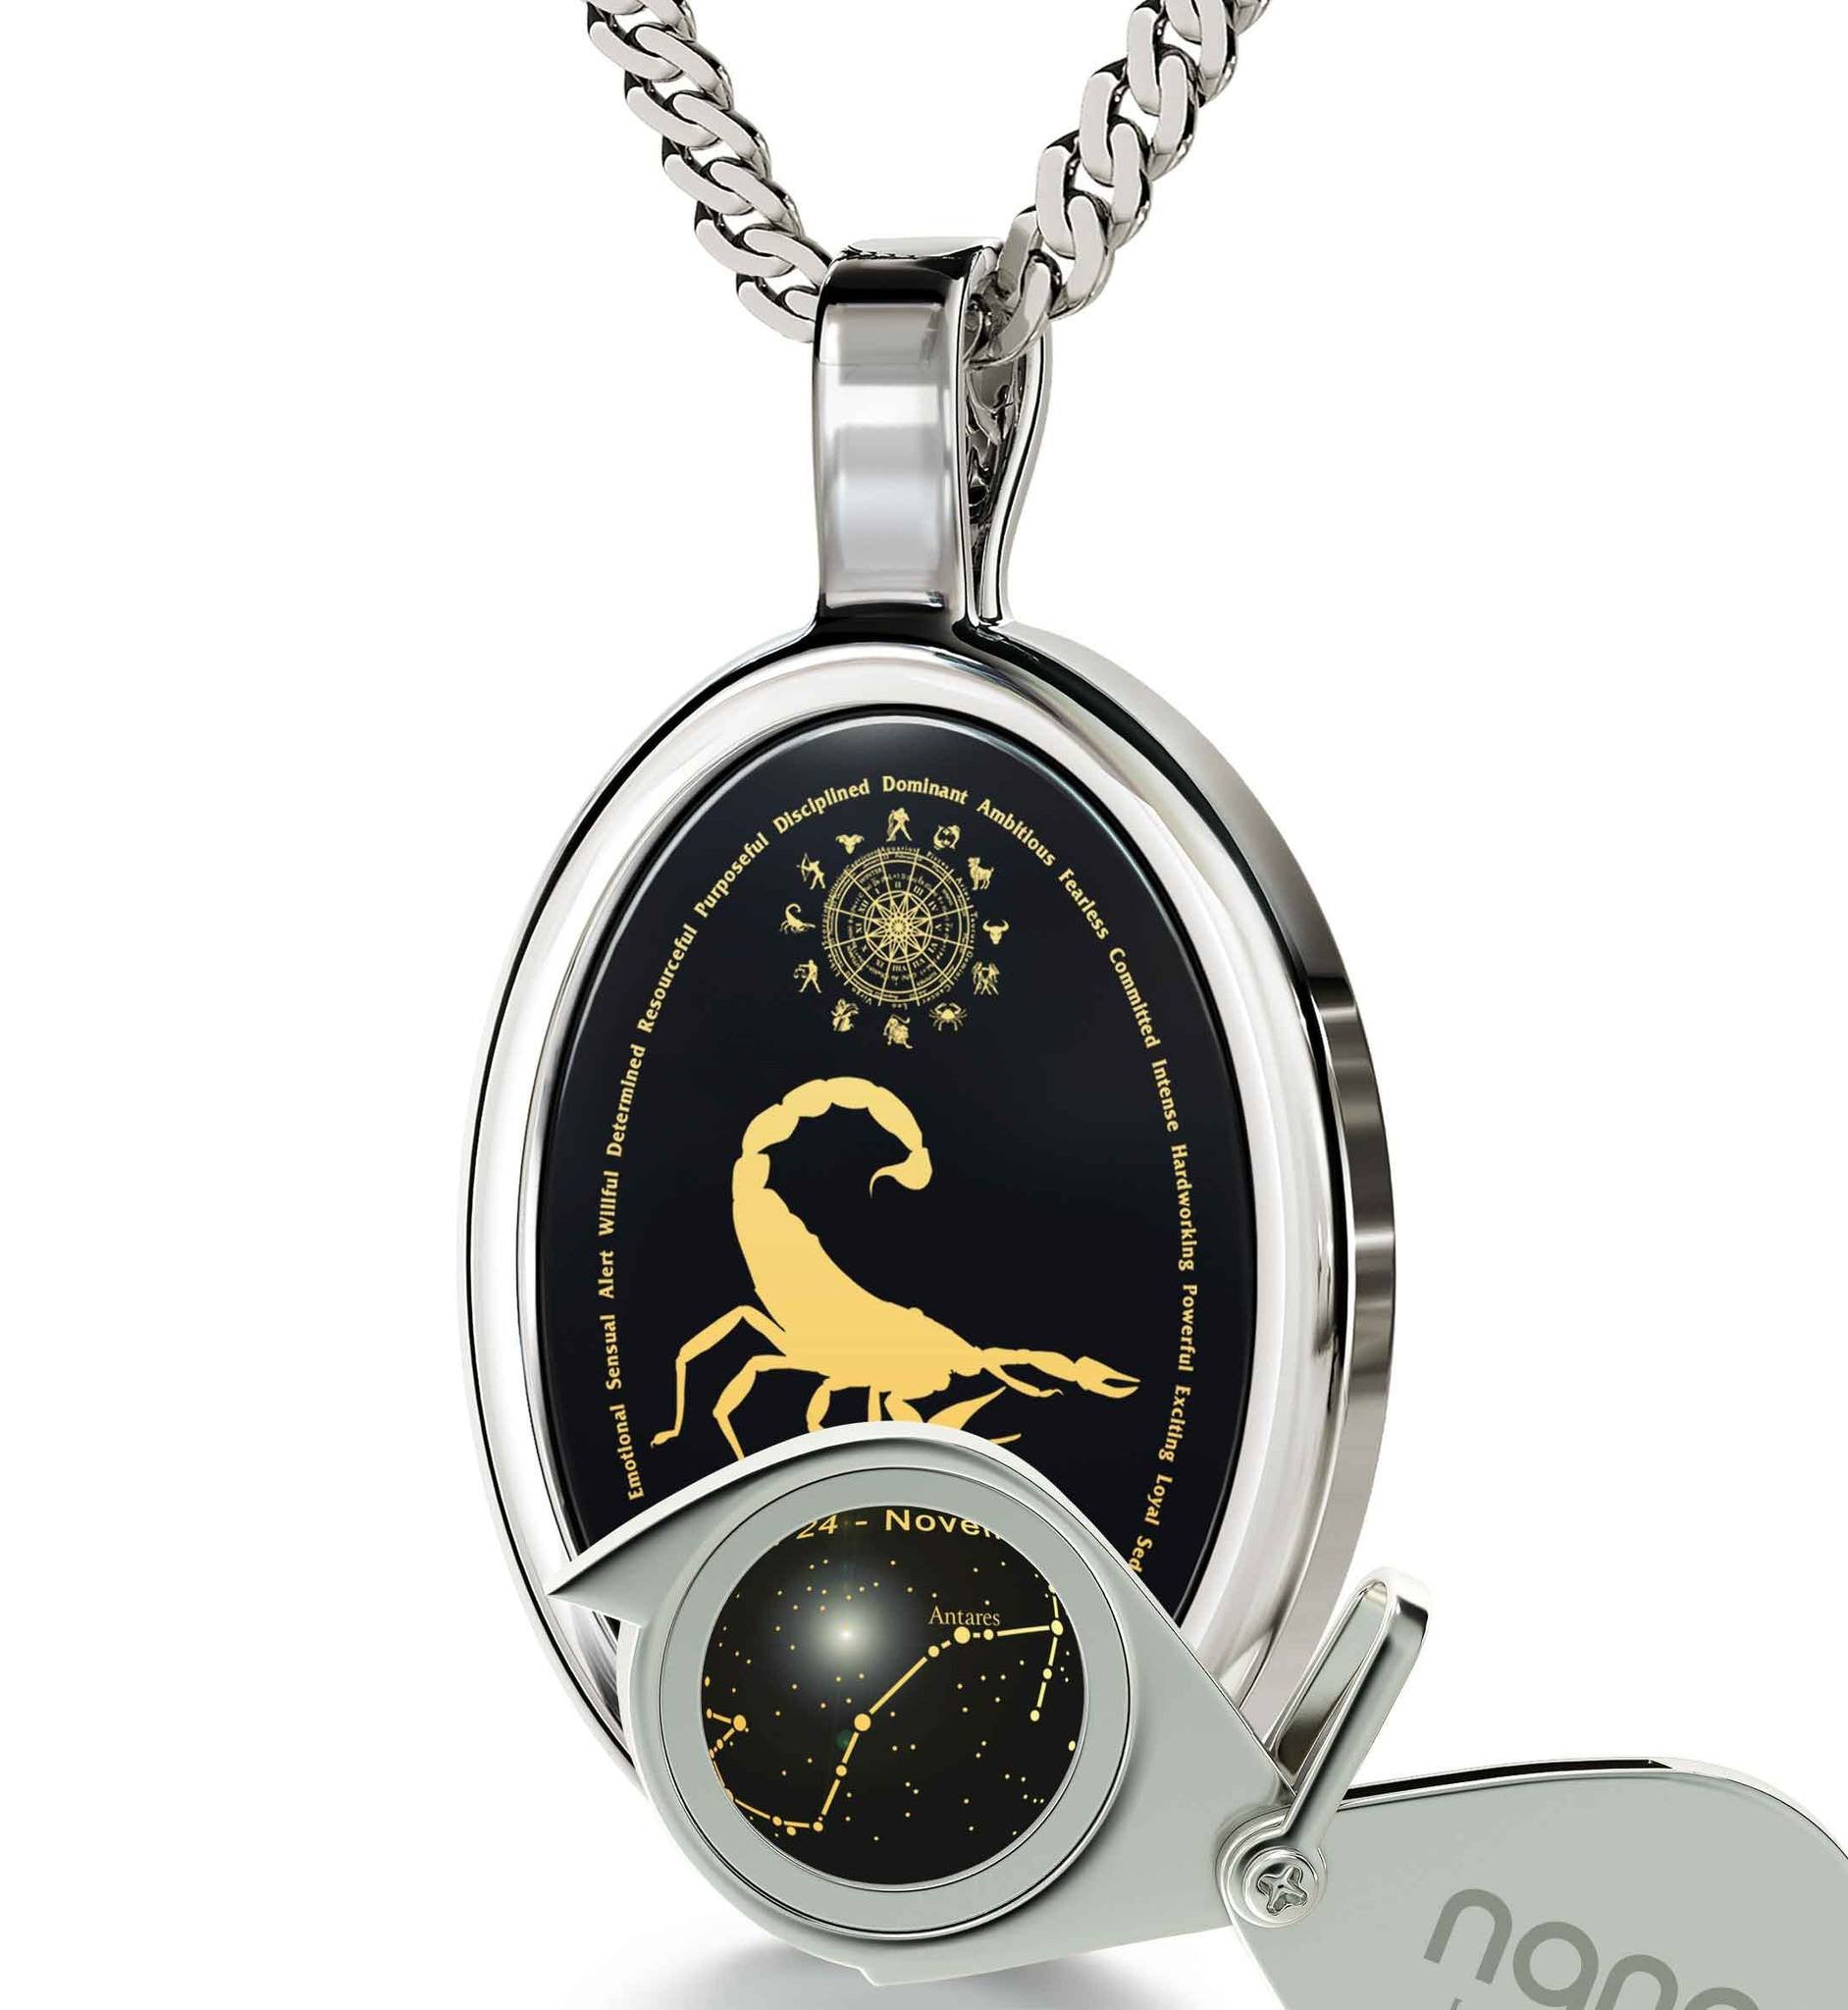 Good Anniversary Gifts for Her: Horoscope Necklace, Zodiac Signs Personality, What to Get Your Girlfriend for Valentines Day